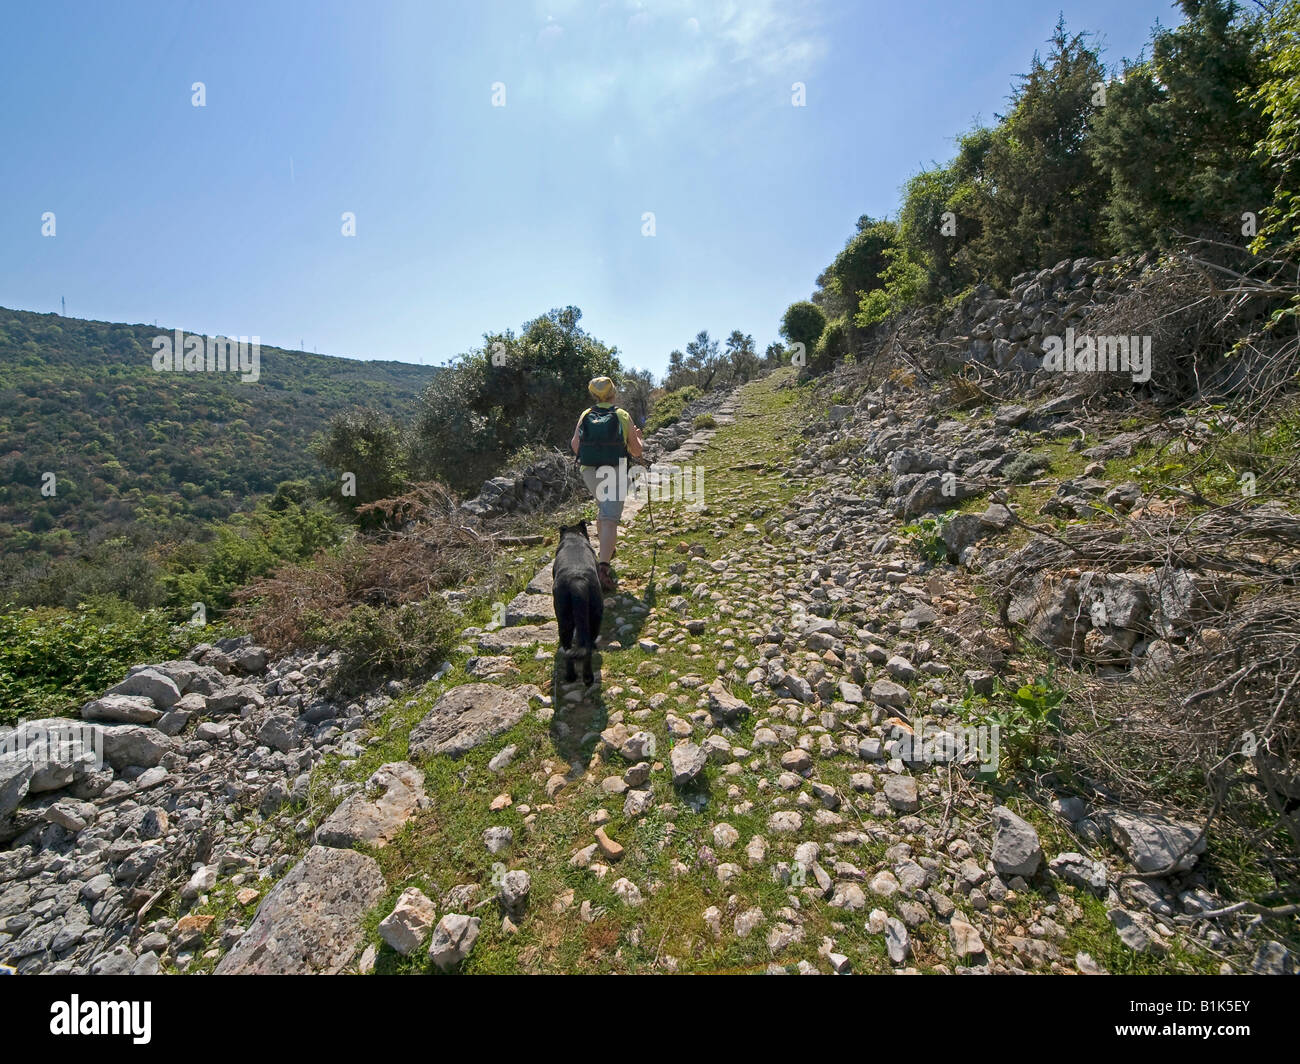 woman with dog hiking on stony old historic road through maquis shrubland macchia on the island Cres Croatia - Stock Image